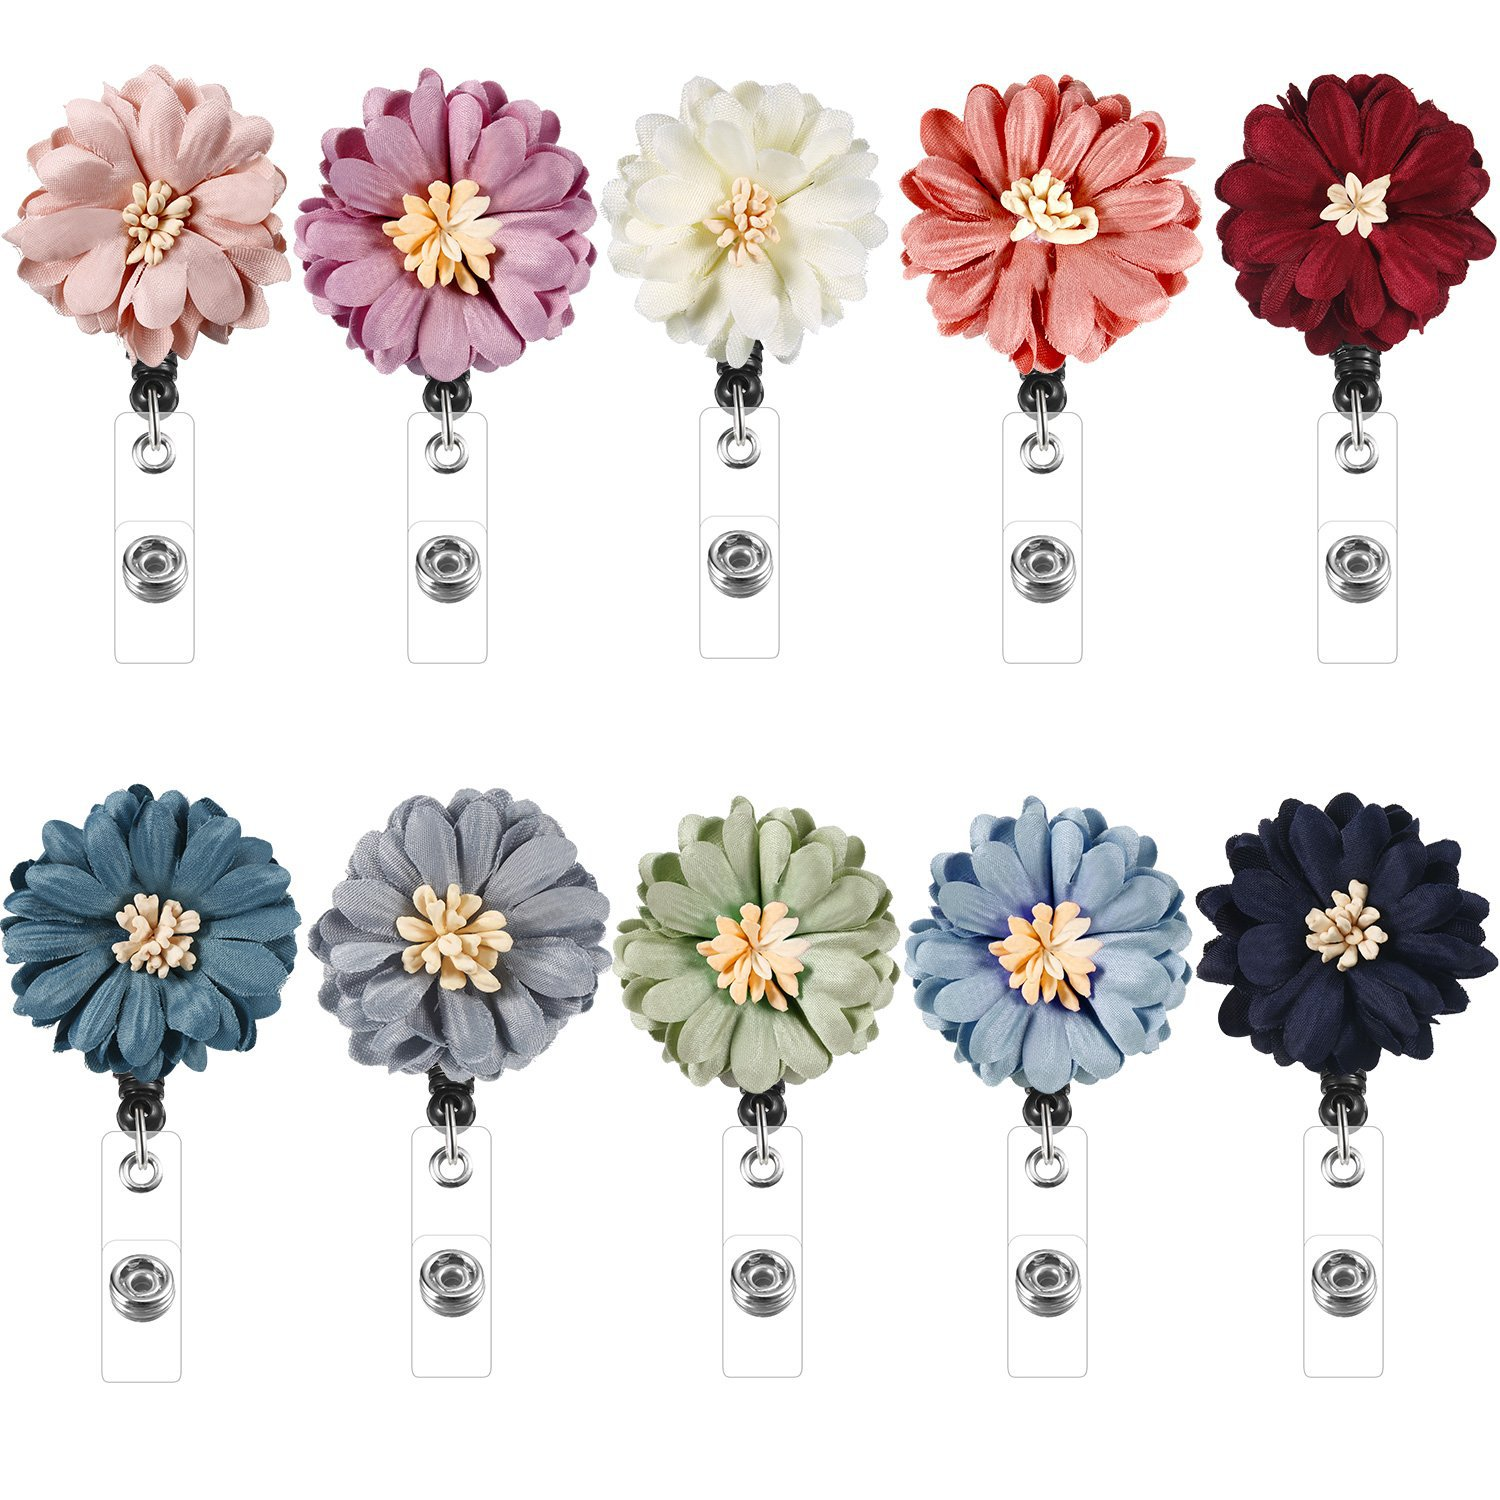 Handmade Fabric Flower Creative Can Buckle Alligator Clip Work Permit Telescopic Clip Nurses Name Tag Clip 12 Color Selectable